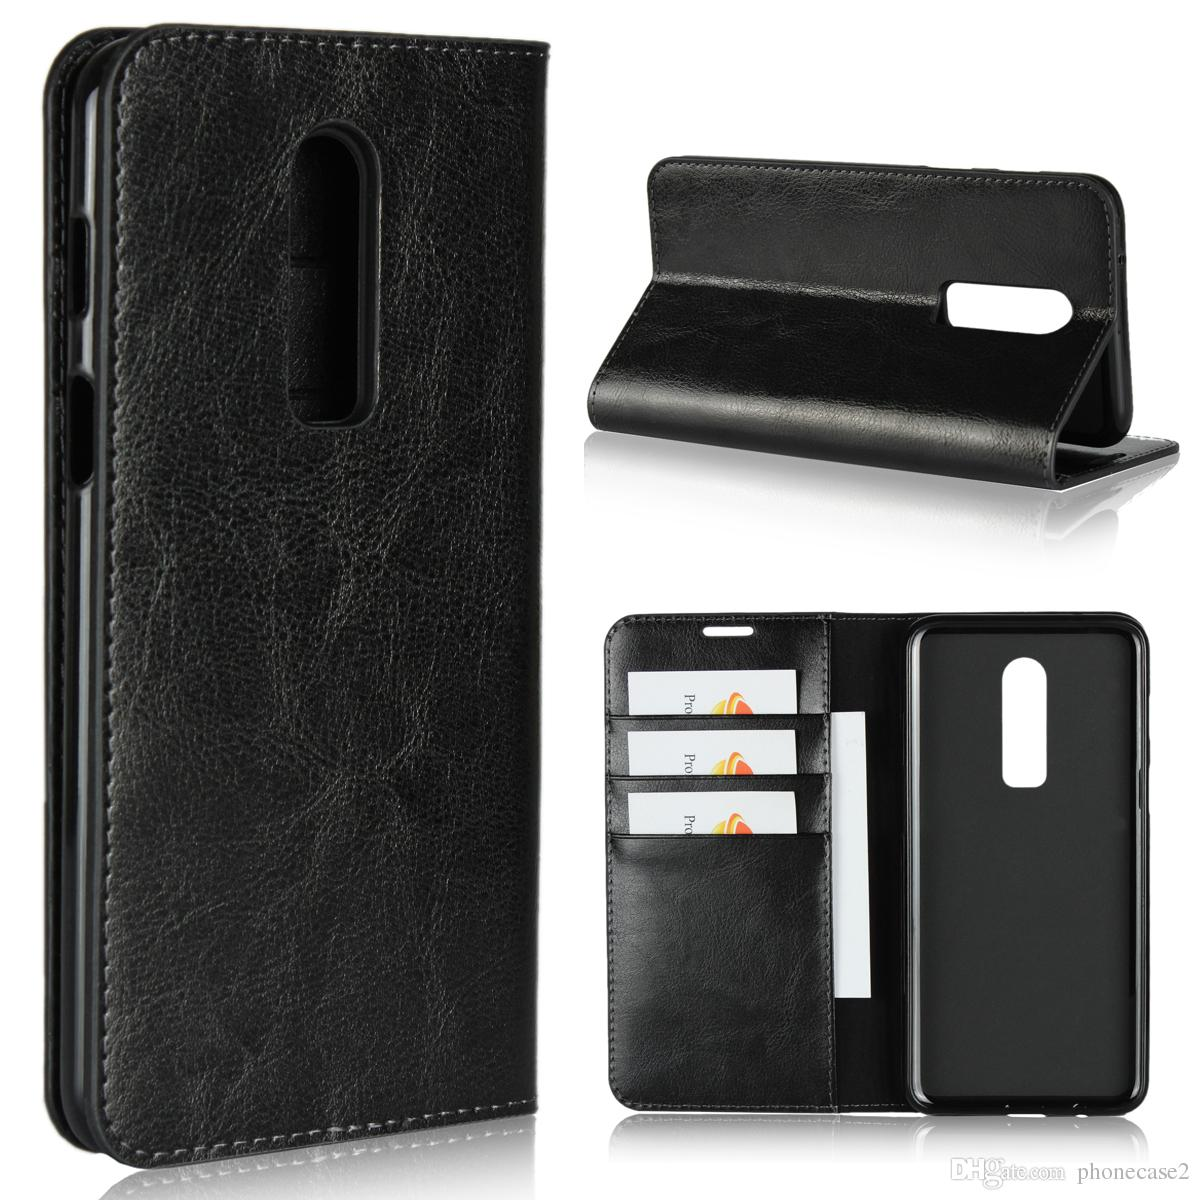 Oneplus 6t Mclaren Leather Wallet Sleeve Case Pdair Red: Best OnePlus 6T Wallet Cases